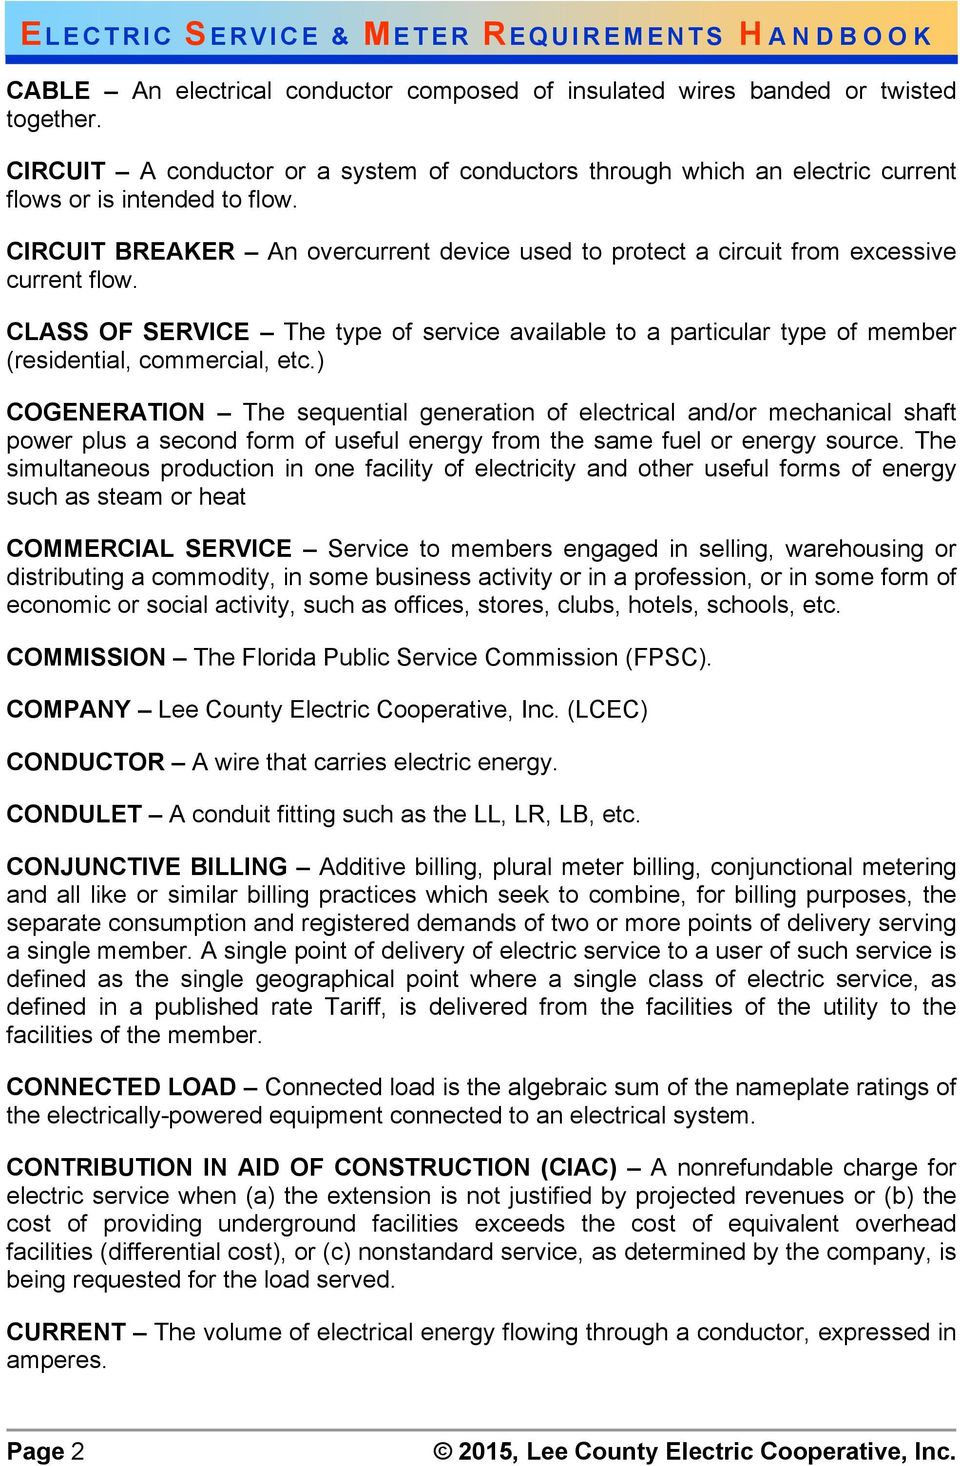 ELECTRIC SERVICE AND METER REQUIREMENTS - PDF